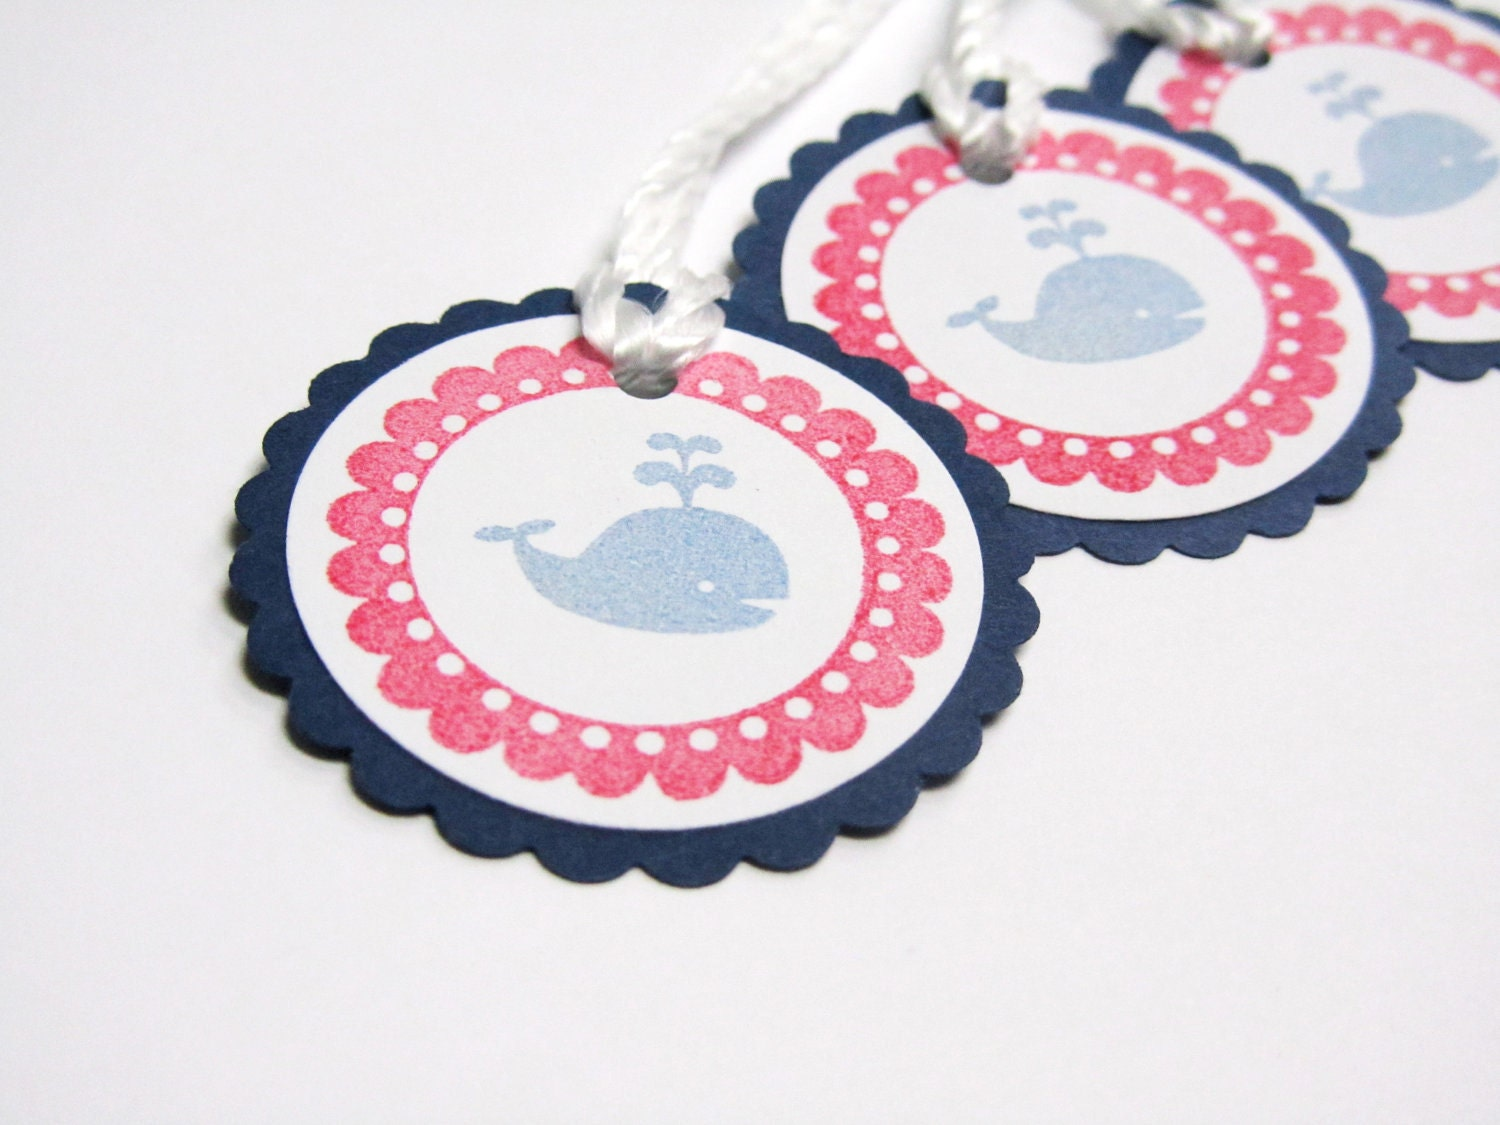 ... 548 New Nautical Baby Shower Name Tags 277 Baby Shower Or Birthday  Party Favor Tags Nautical